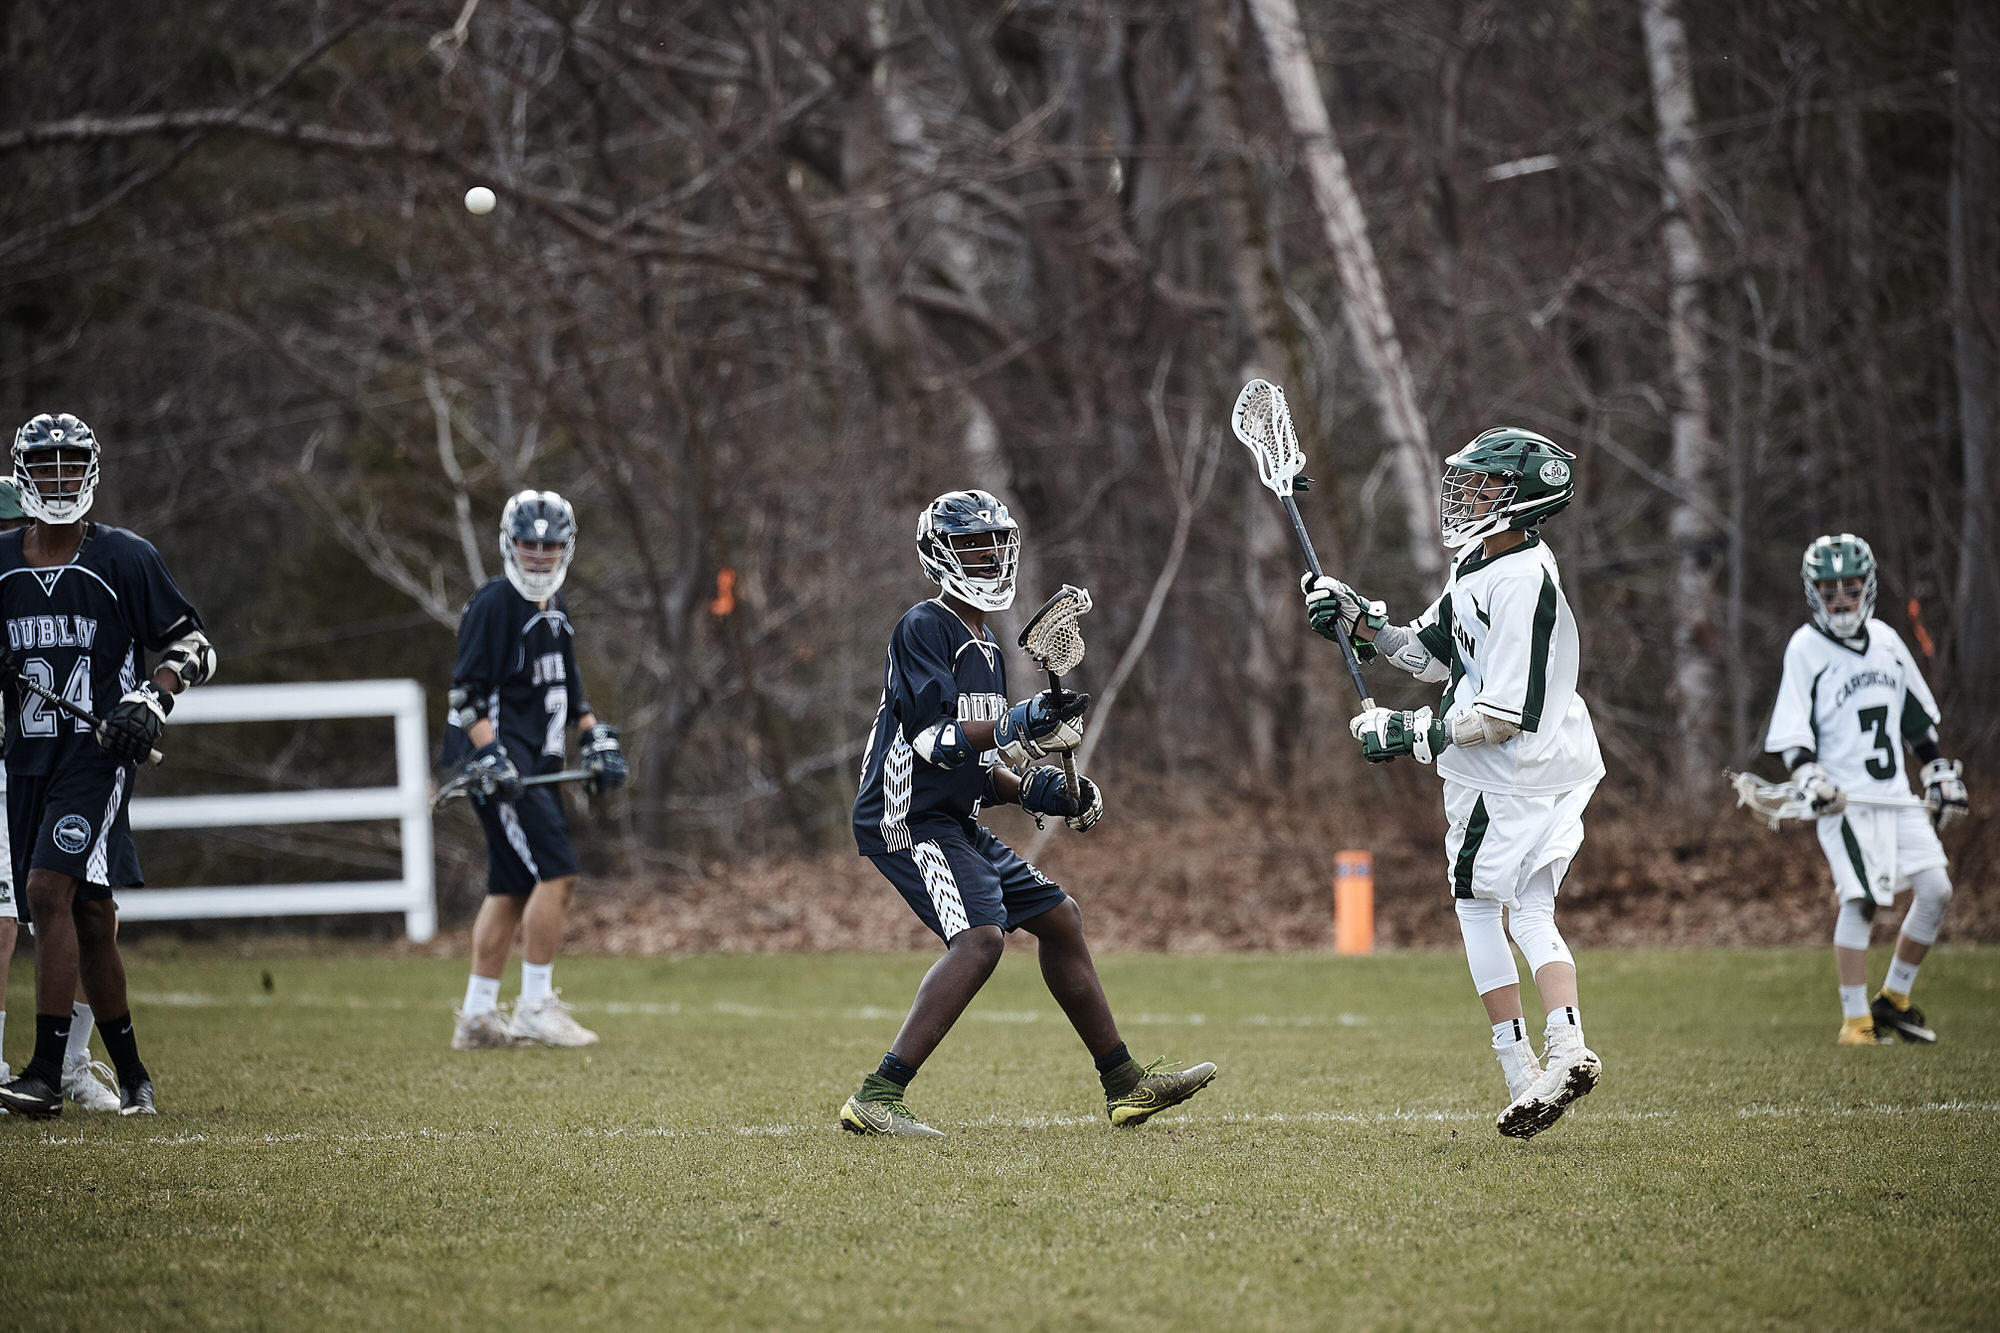 HLL Player Earns Full-Tuition Scholarship to Cardigan Mountain School (NH)